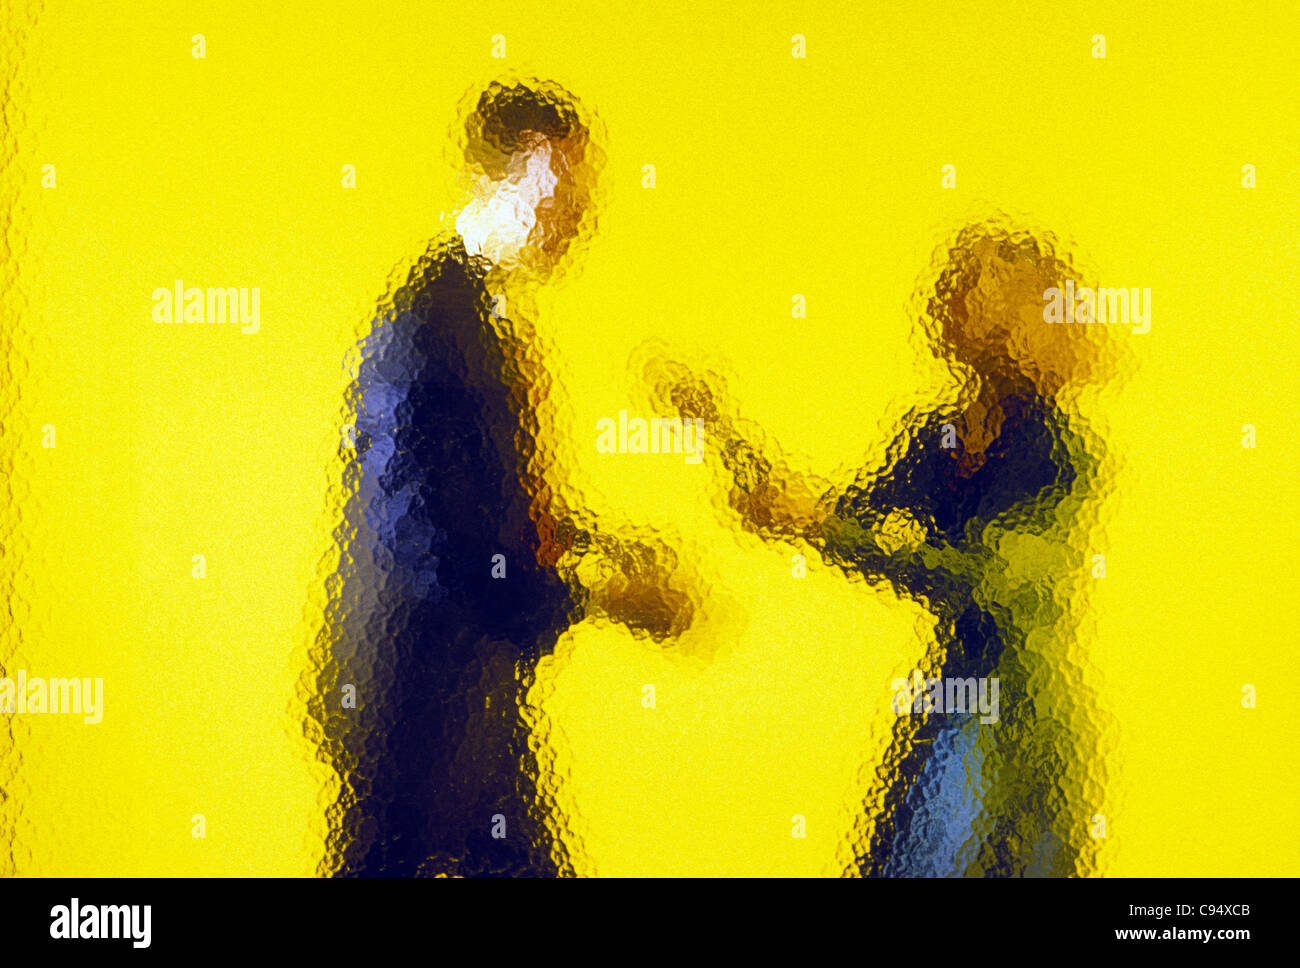 Abstract view of businessman and businesswoman through mottled glass wall - Stock Image